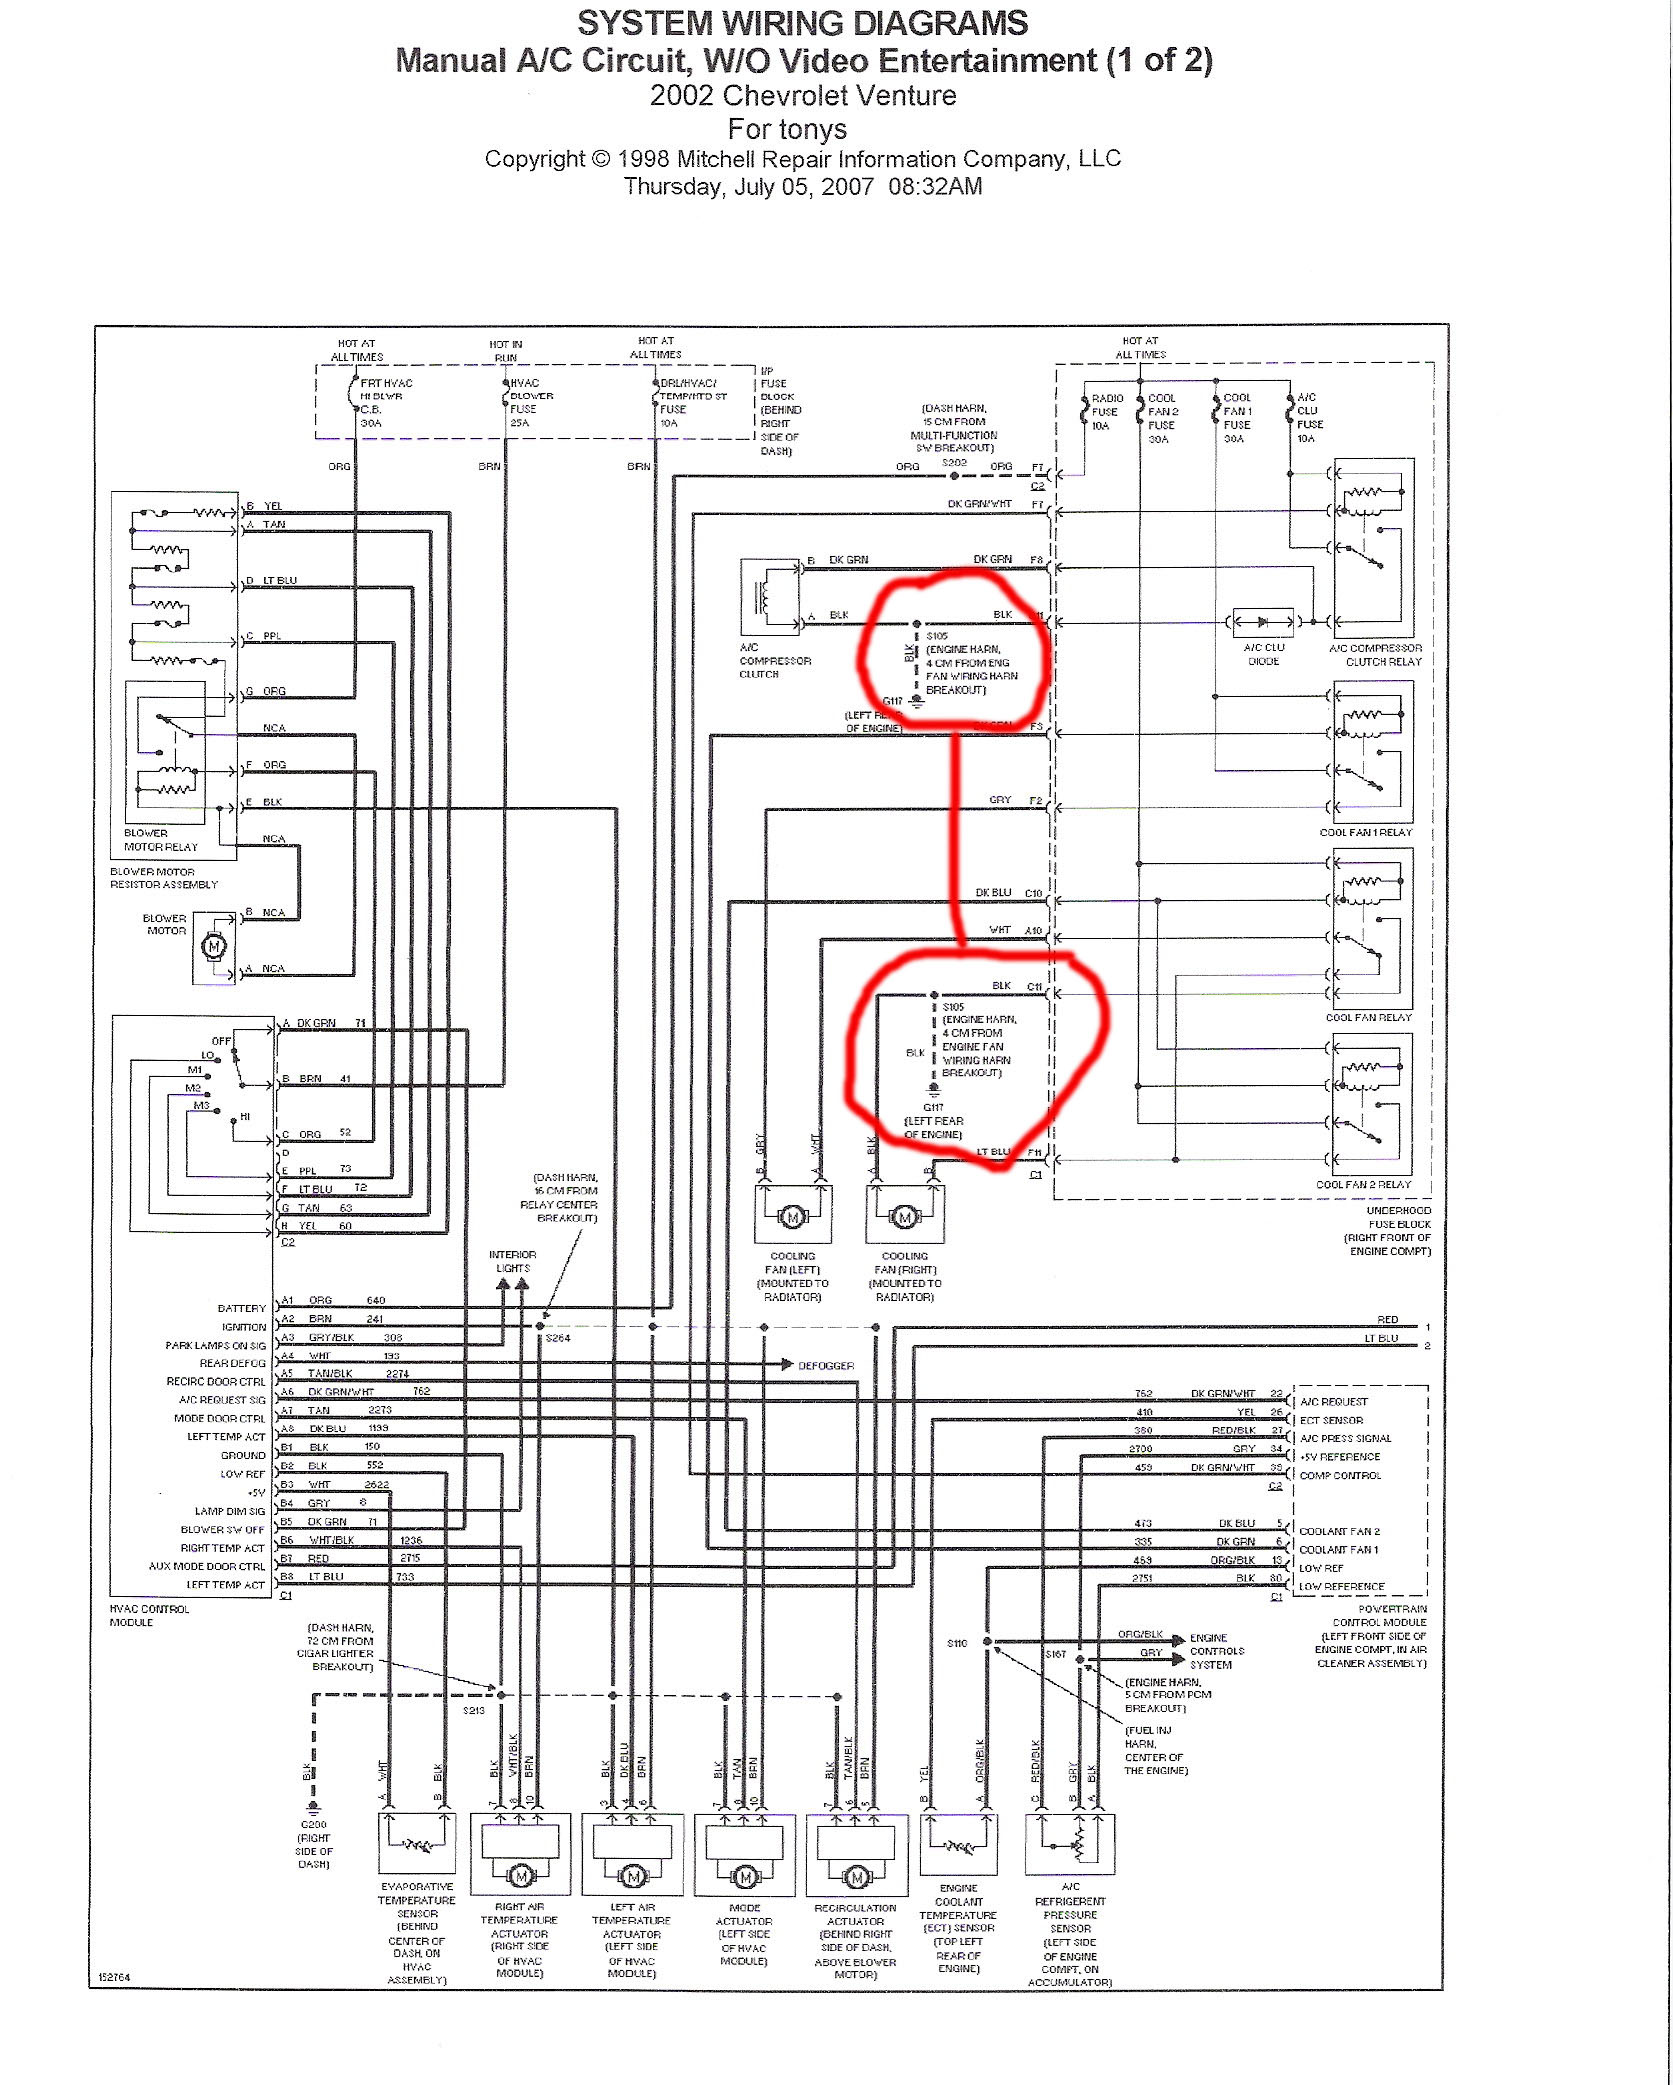 2004 chevy colorado radio wiring diagram power 03 chevy venture wiring diagram html - imageresizertool.com 05 colorado radio wiring diagram